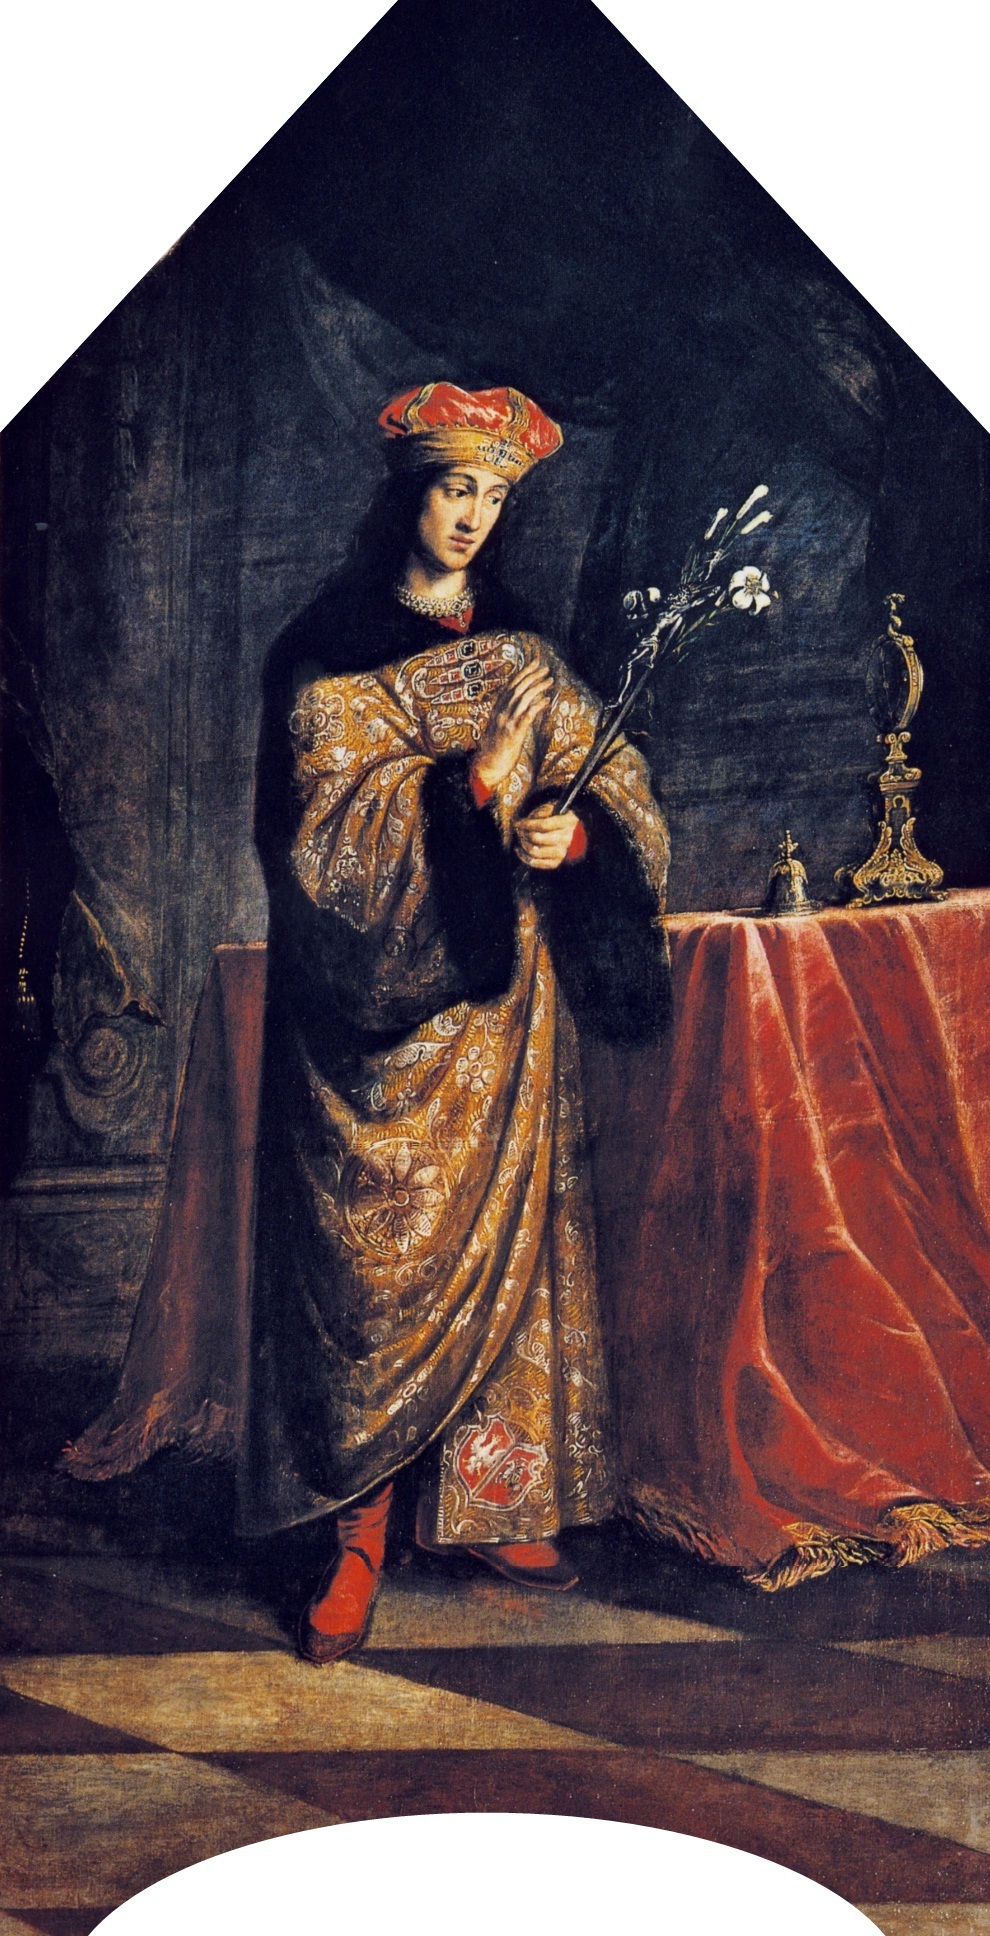 saint casimir single guys St casimir was possessed of great charms of person and character, and was noted particularly for his justice and chastity often at night he would kneel for hours before the locked doors of churches, regardless of the hour or the inclemency of the weather.